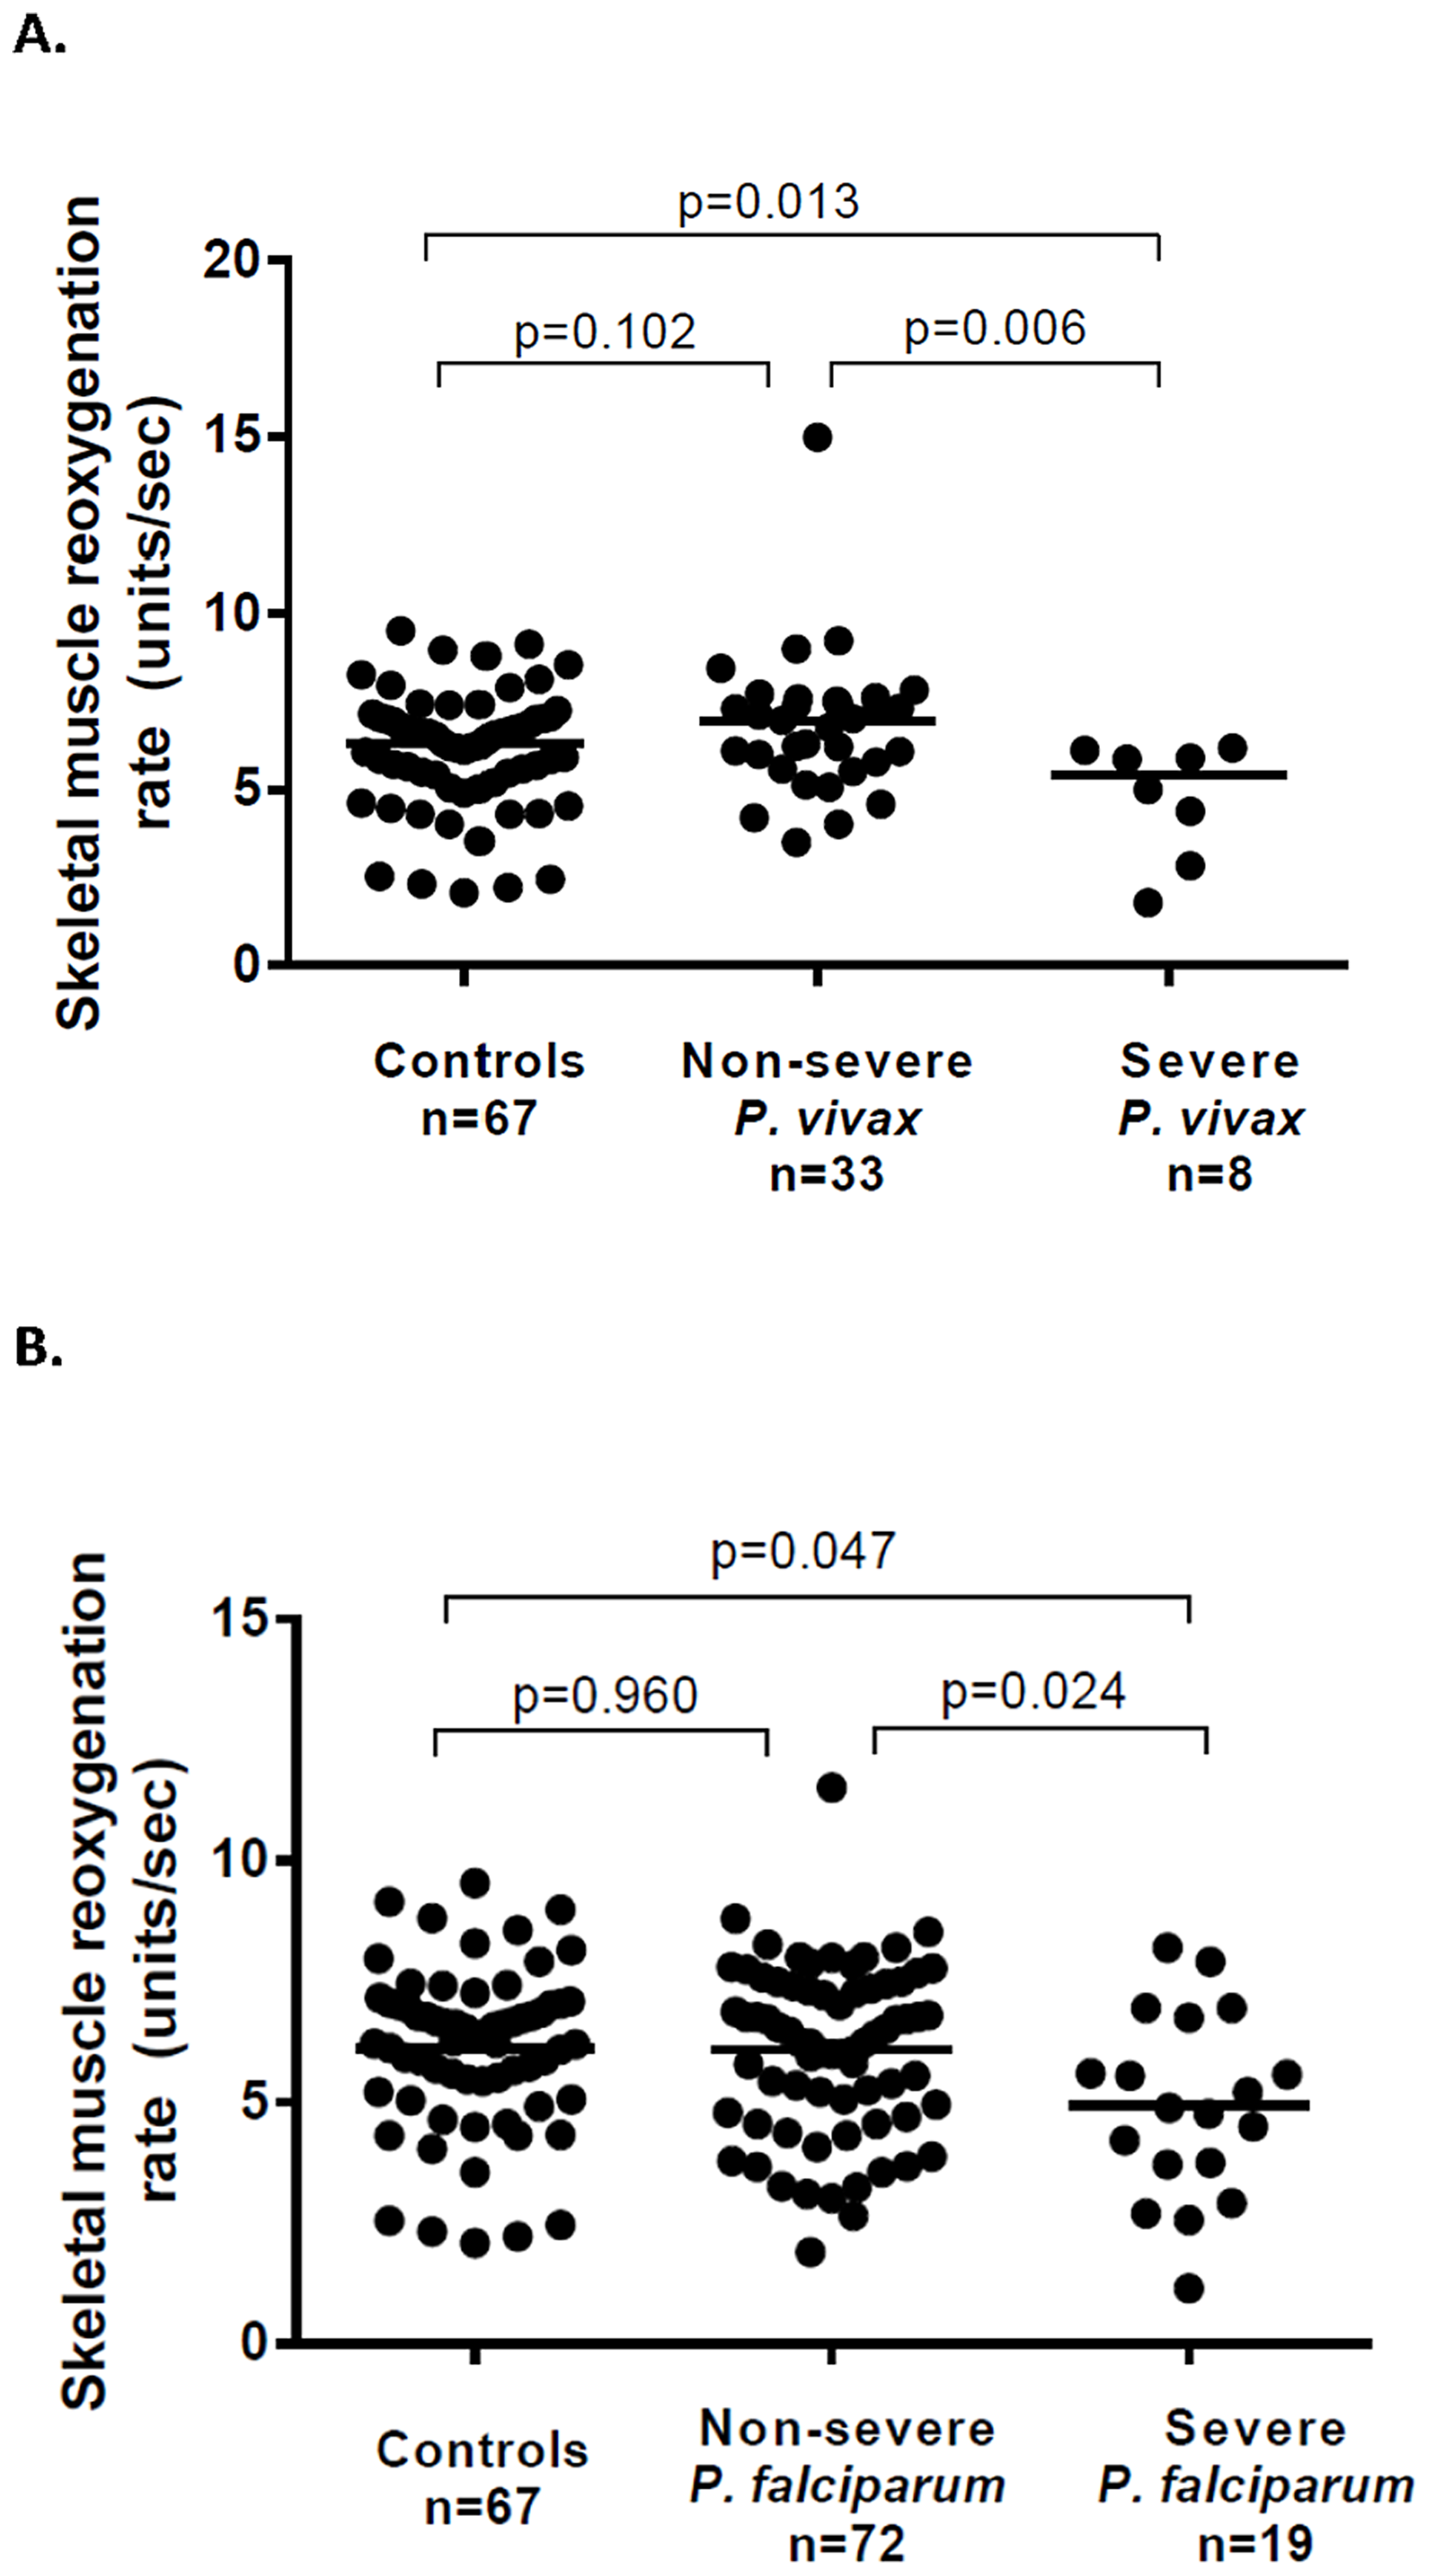 Microvascular function (skeletal muscle reoxygenation) among patients with vivax (A) and falciparum (B) malaria.